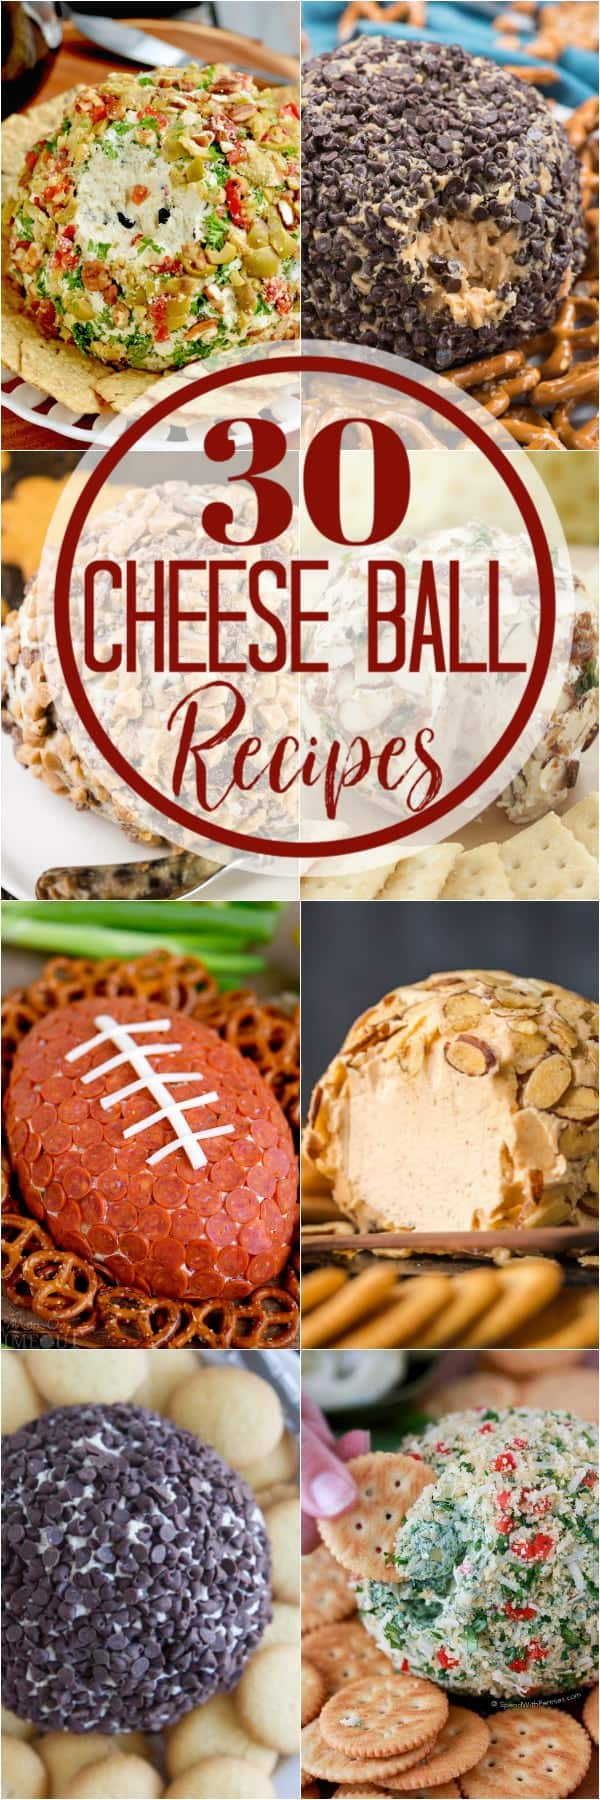 30 Cheese Ball Recipes